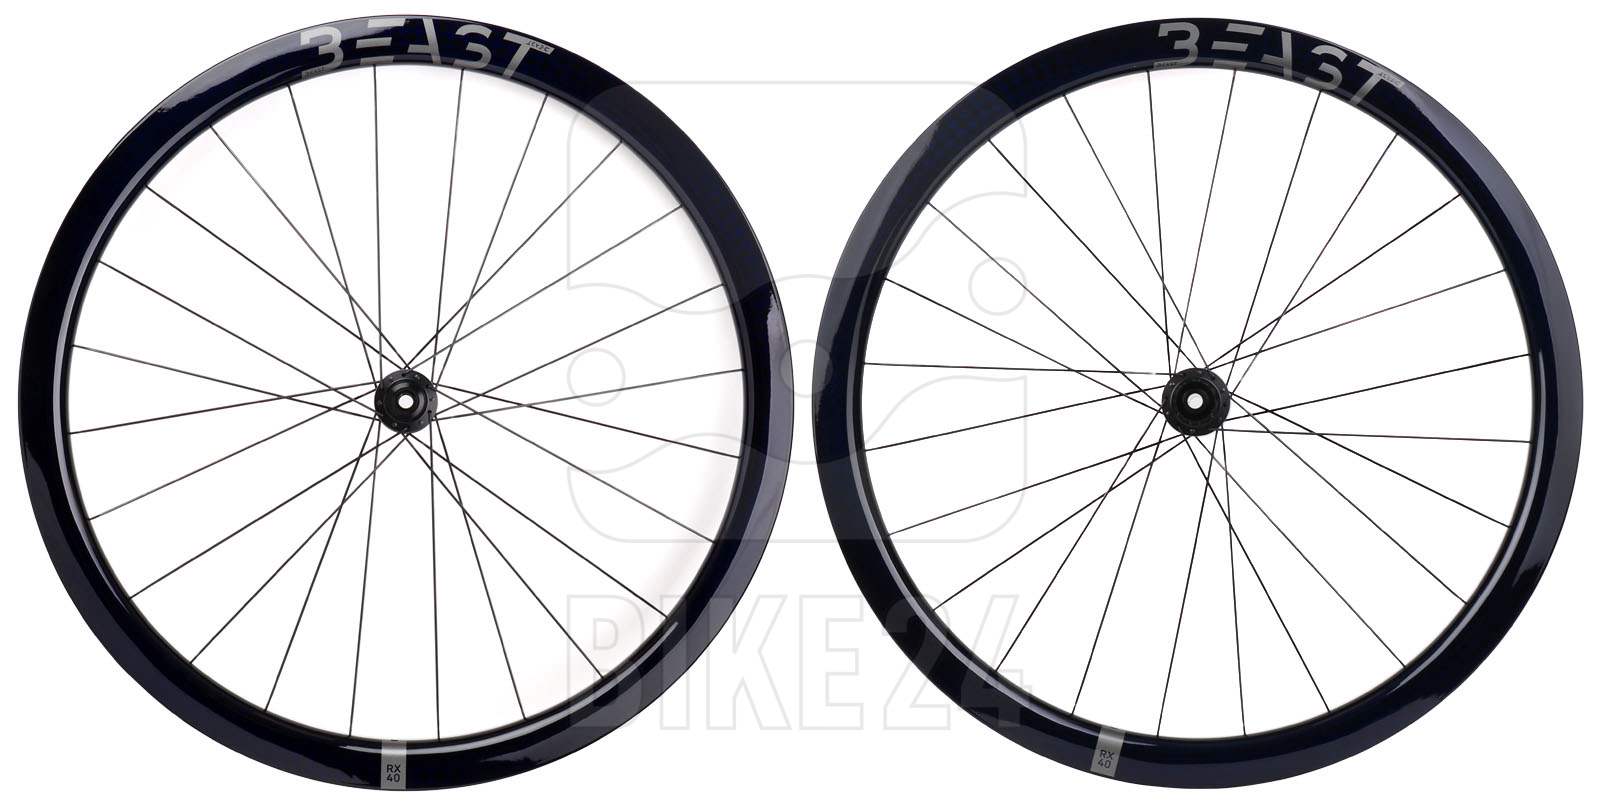 Beast Components RX40 + DT Swiss 240 Carbon Wheelset - Center Lock - FW: 12x100mm   RW: 12x142mm - SQUARE blue